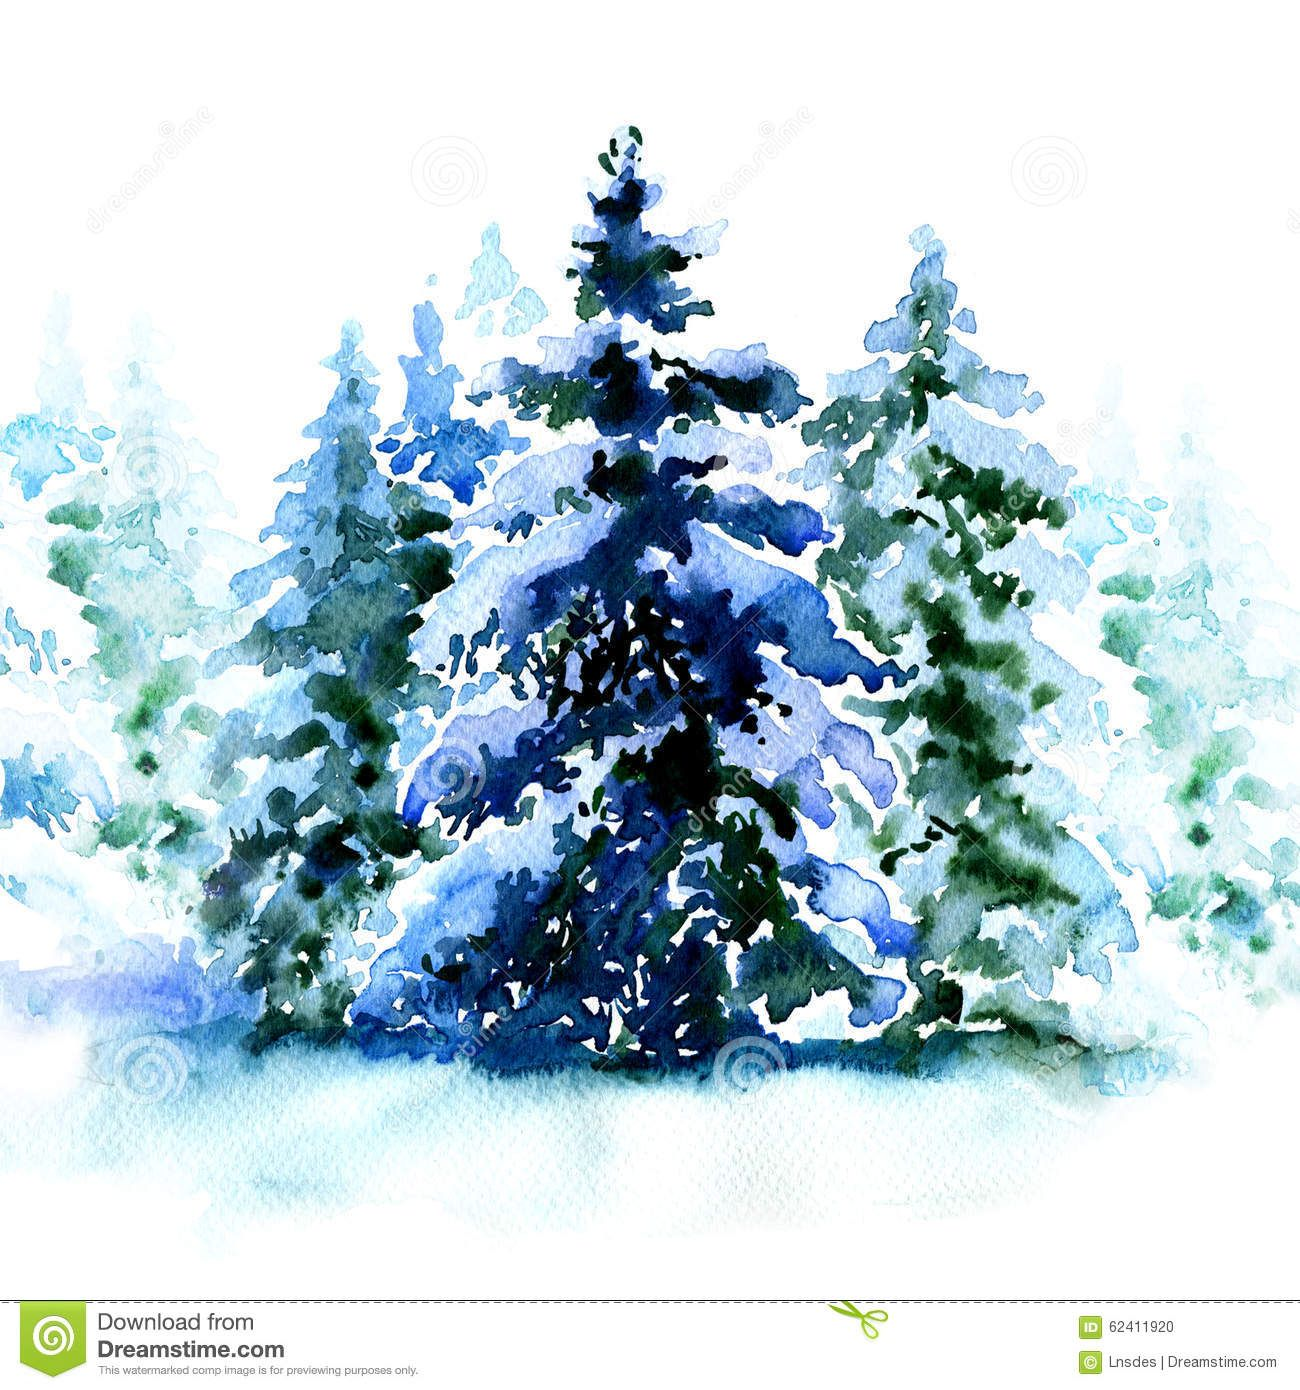 group of christmas trees covered snow in winter isolated - Snow Covered Christmas Trees